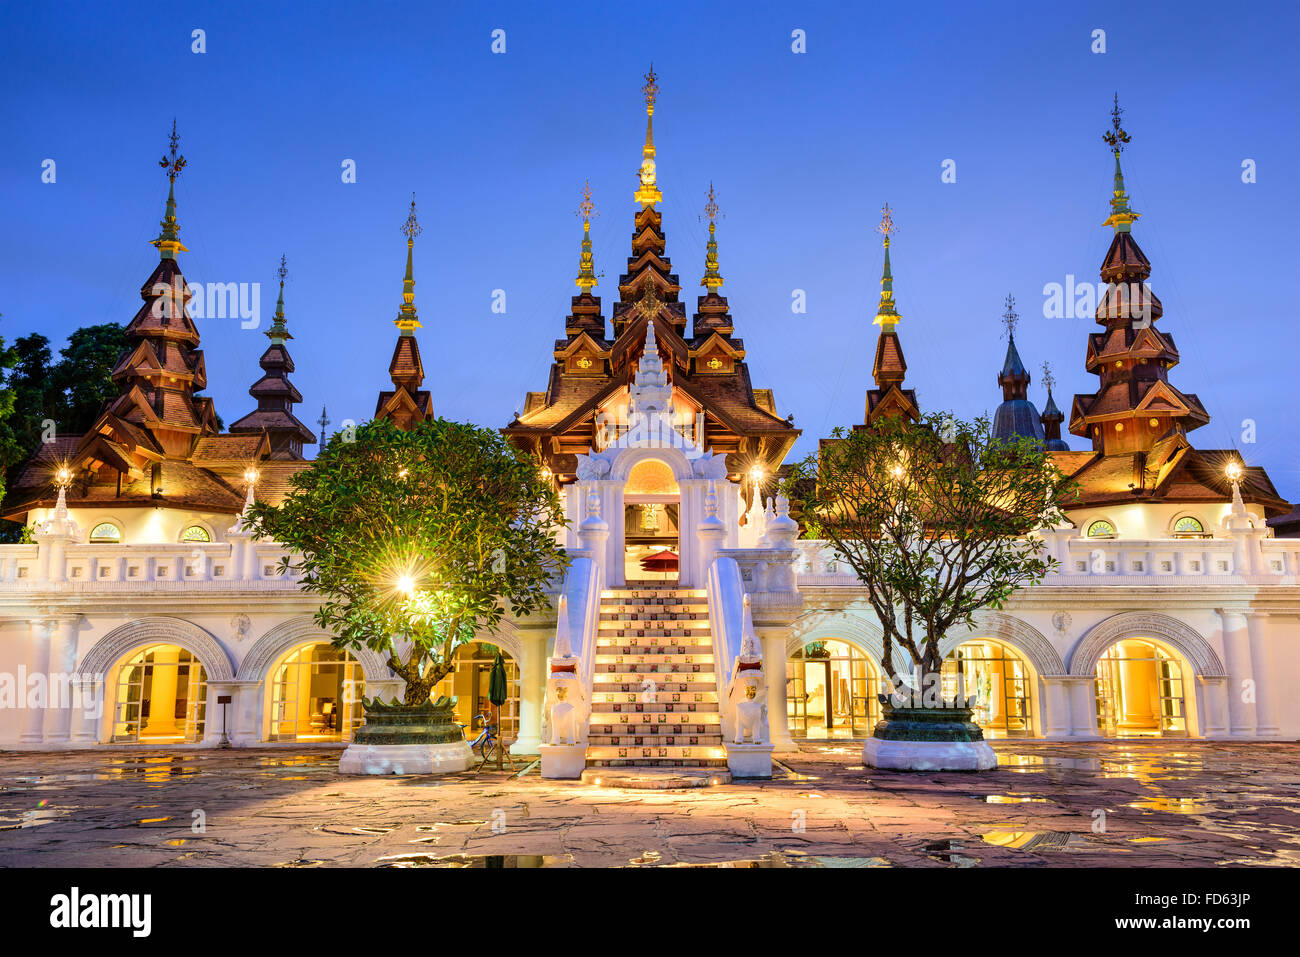 Chiang Mai, Thailand traditionelles Hotel. Stockfoto